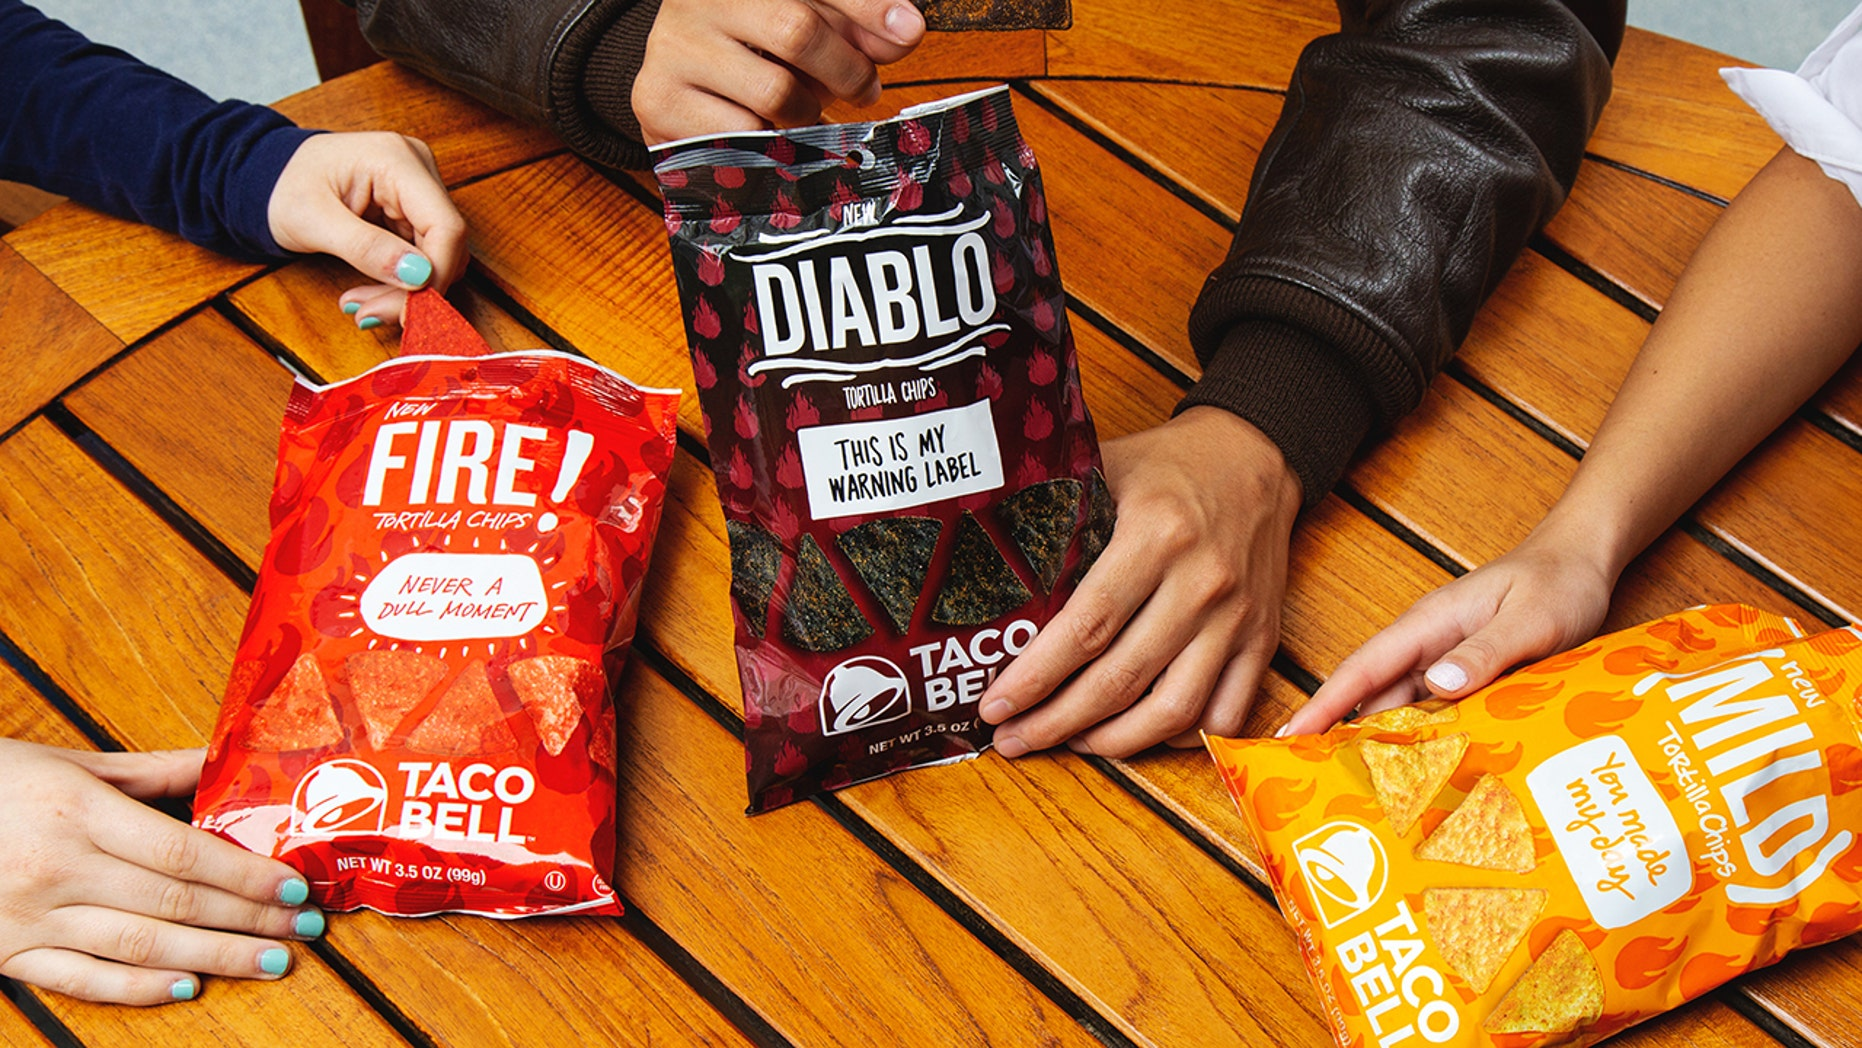 Taco Bell's latest tortilla chip flavor, Diablo, is joining its less fiery cousins, Mild and Fire, at 7-Eleven locations.